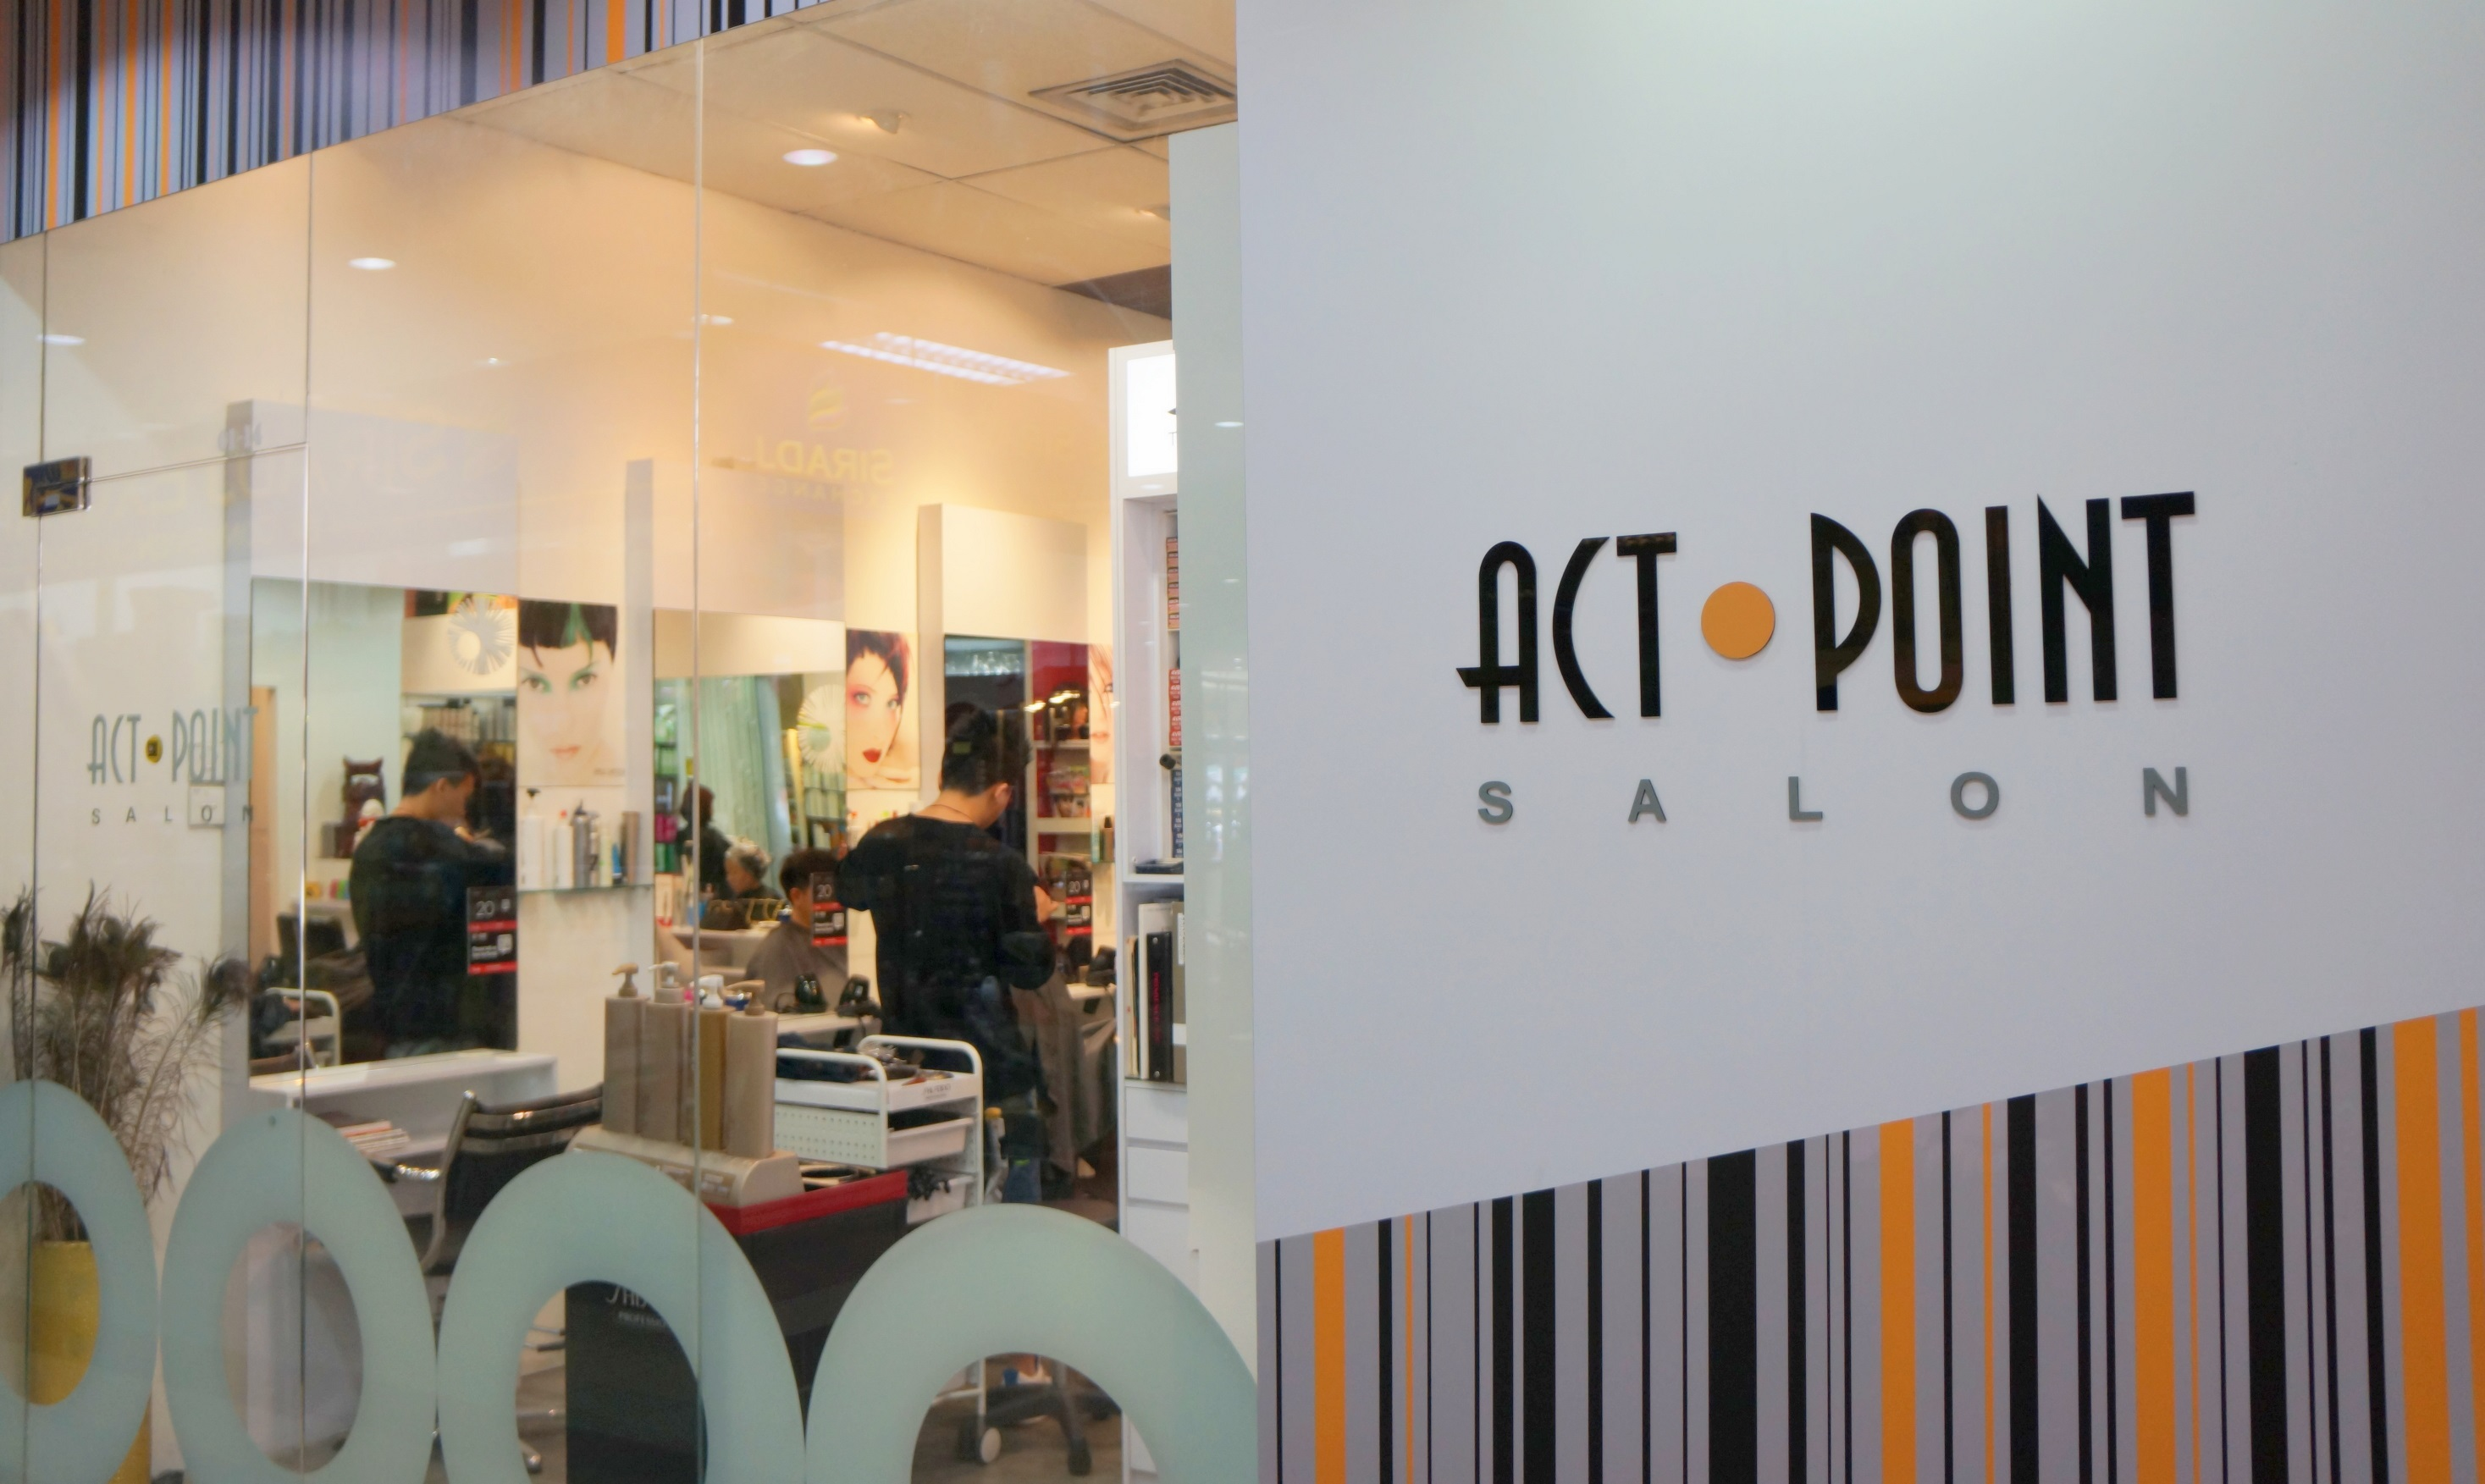 Salons with promotions or no surcharges for chinese new year for Act point salon review